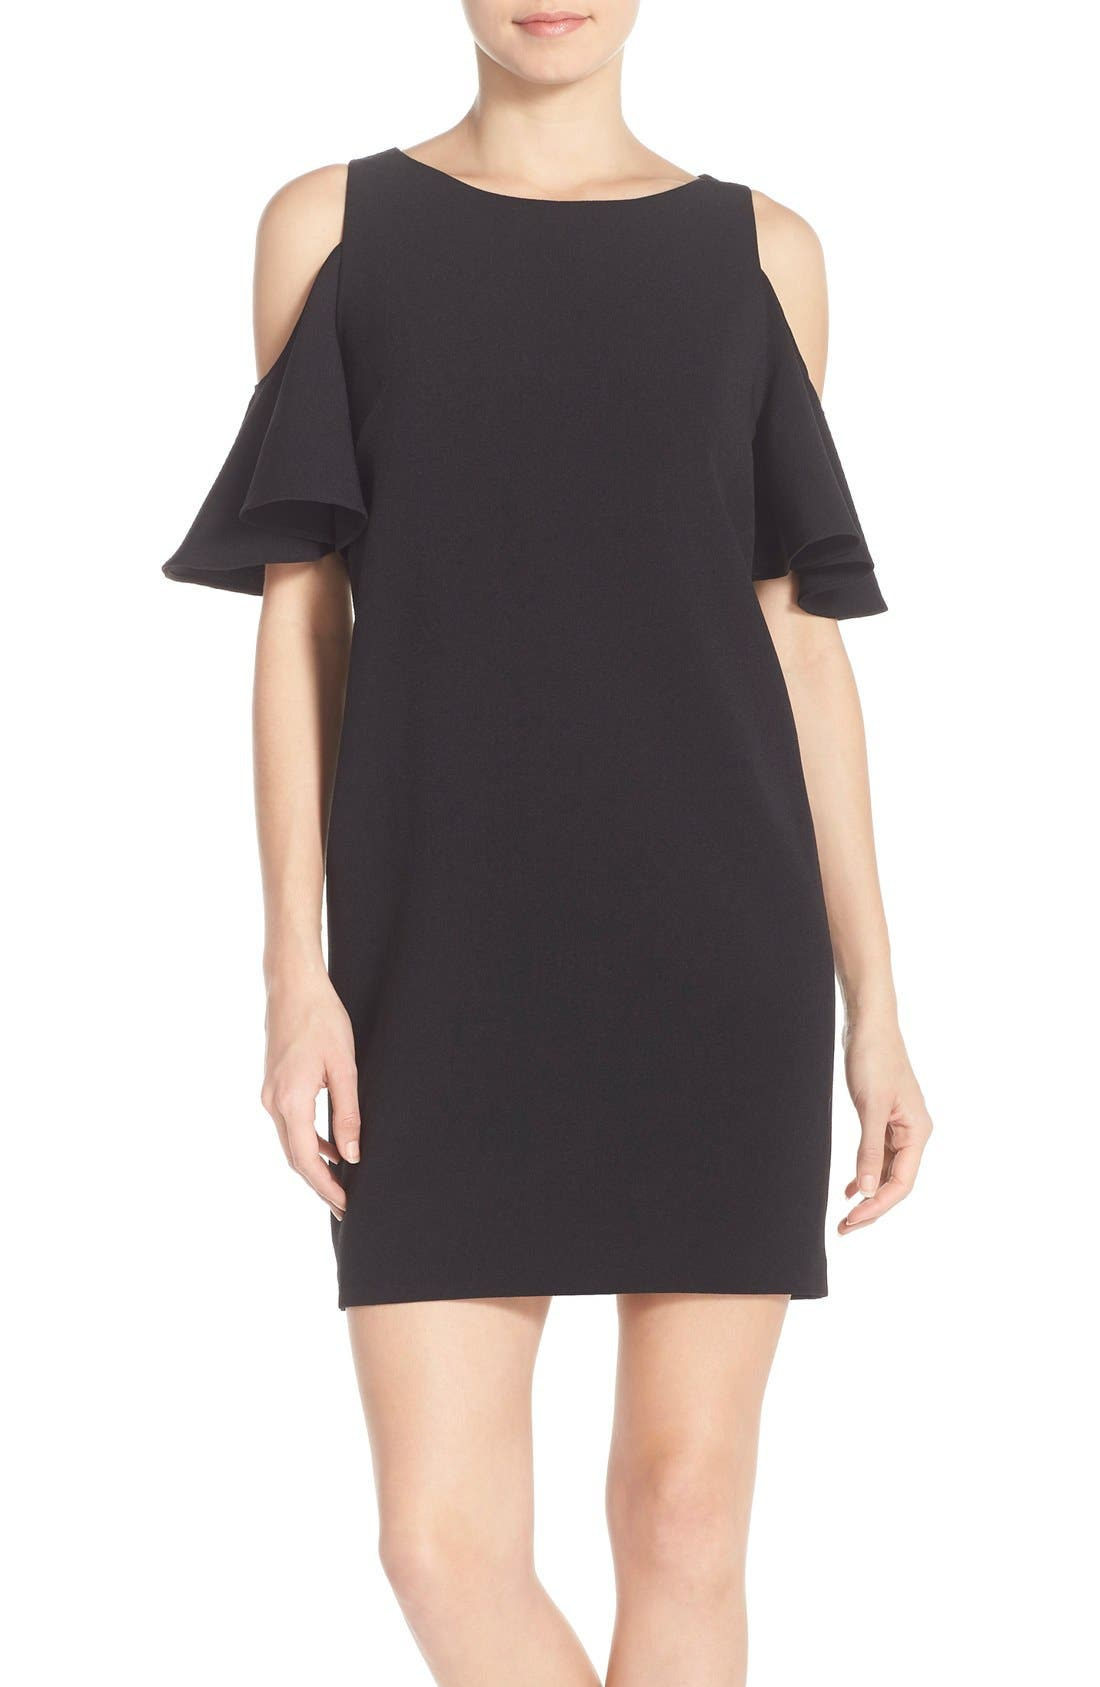 Chelsea28 'Peek-A-Boo' Cold Shoulder Shift Dress